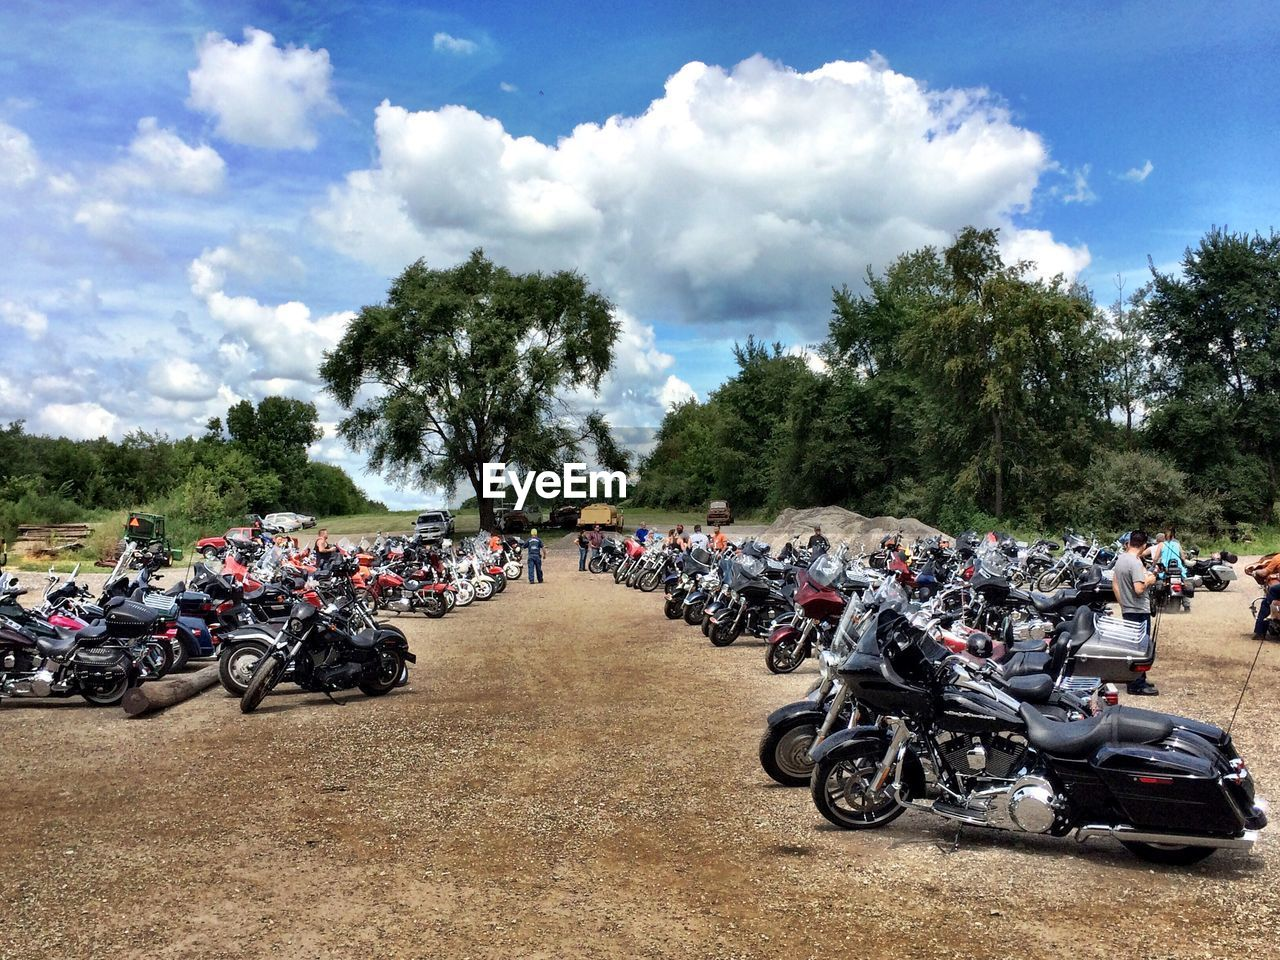 motorcycle, large group of people, crash helmet, real people, motorsport, mode of transport, sports race, sky, transportation, motorcycle racing, men, land vehicle, riding, biker, day, cloud - sky, outdoors, competition, lifestyles, sports helmet, tree, sports track, helmet, motocross, extreme sports, headwear, people